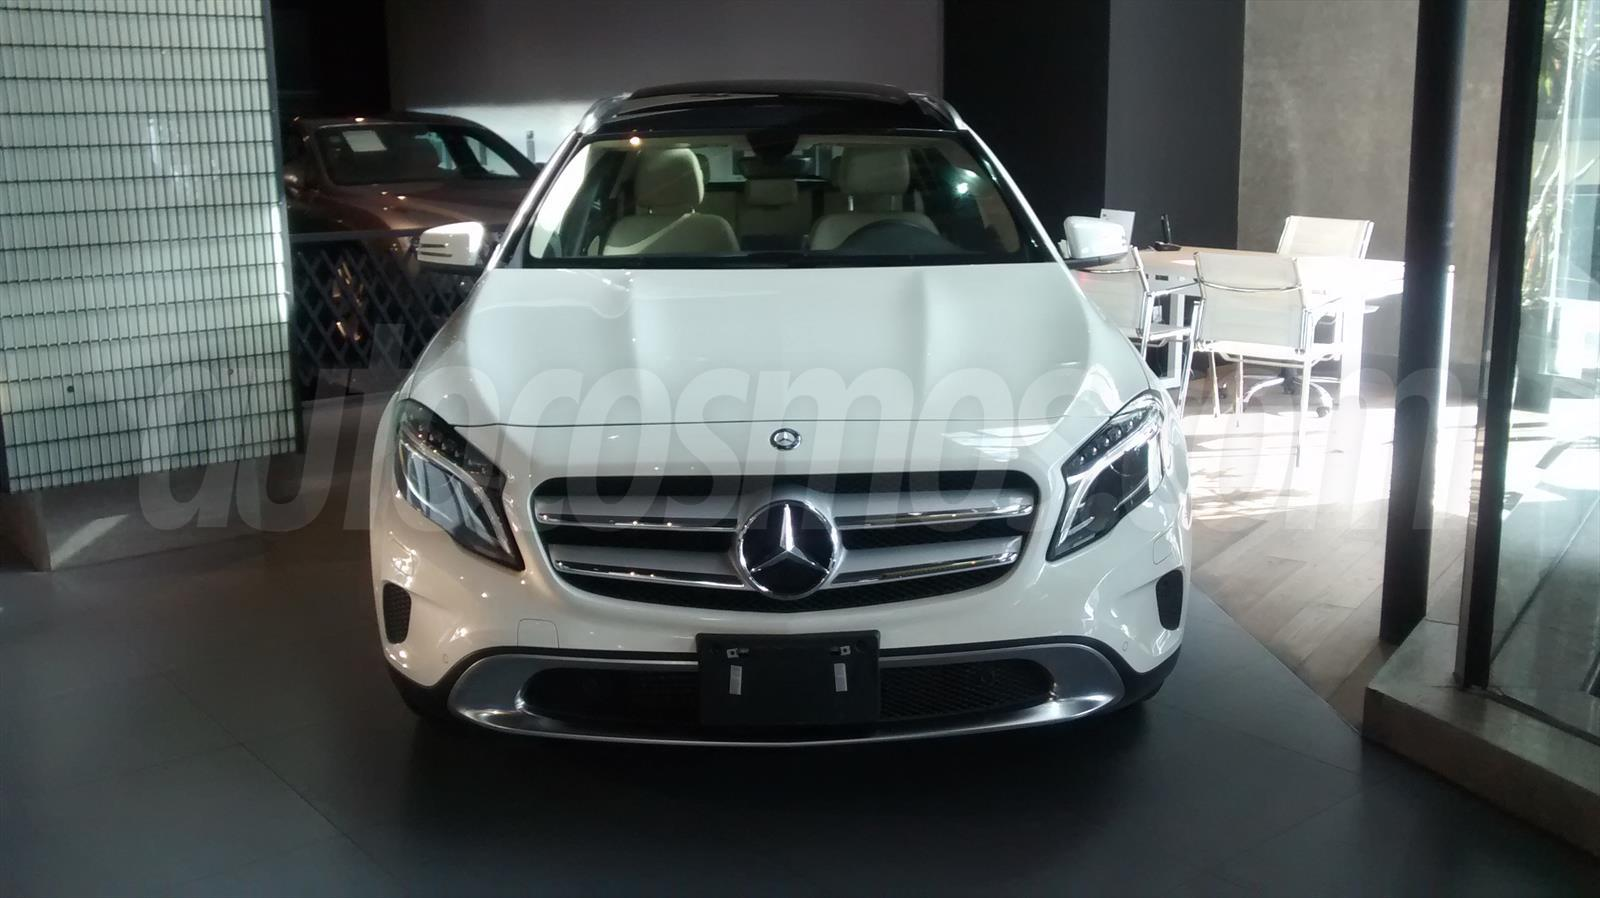 Autos mercedes benz clase a 200 cgi 2014 0 km compra tu for Camioneta mercedes benz